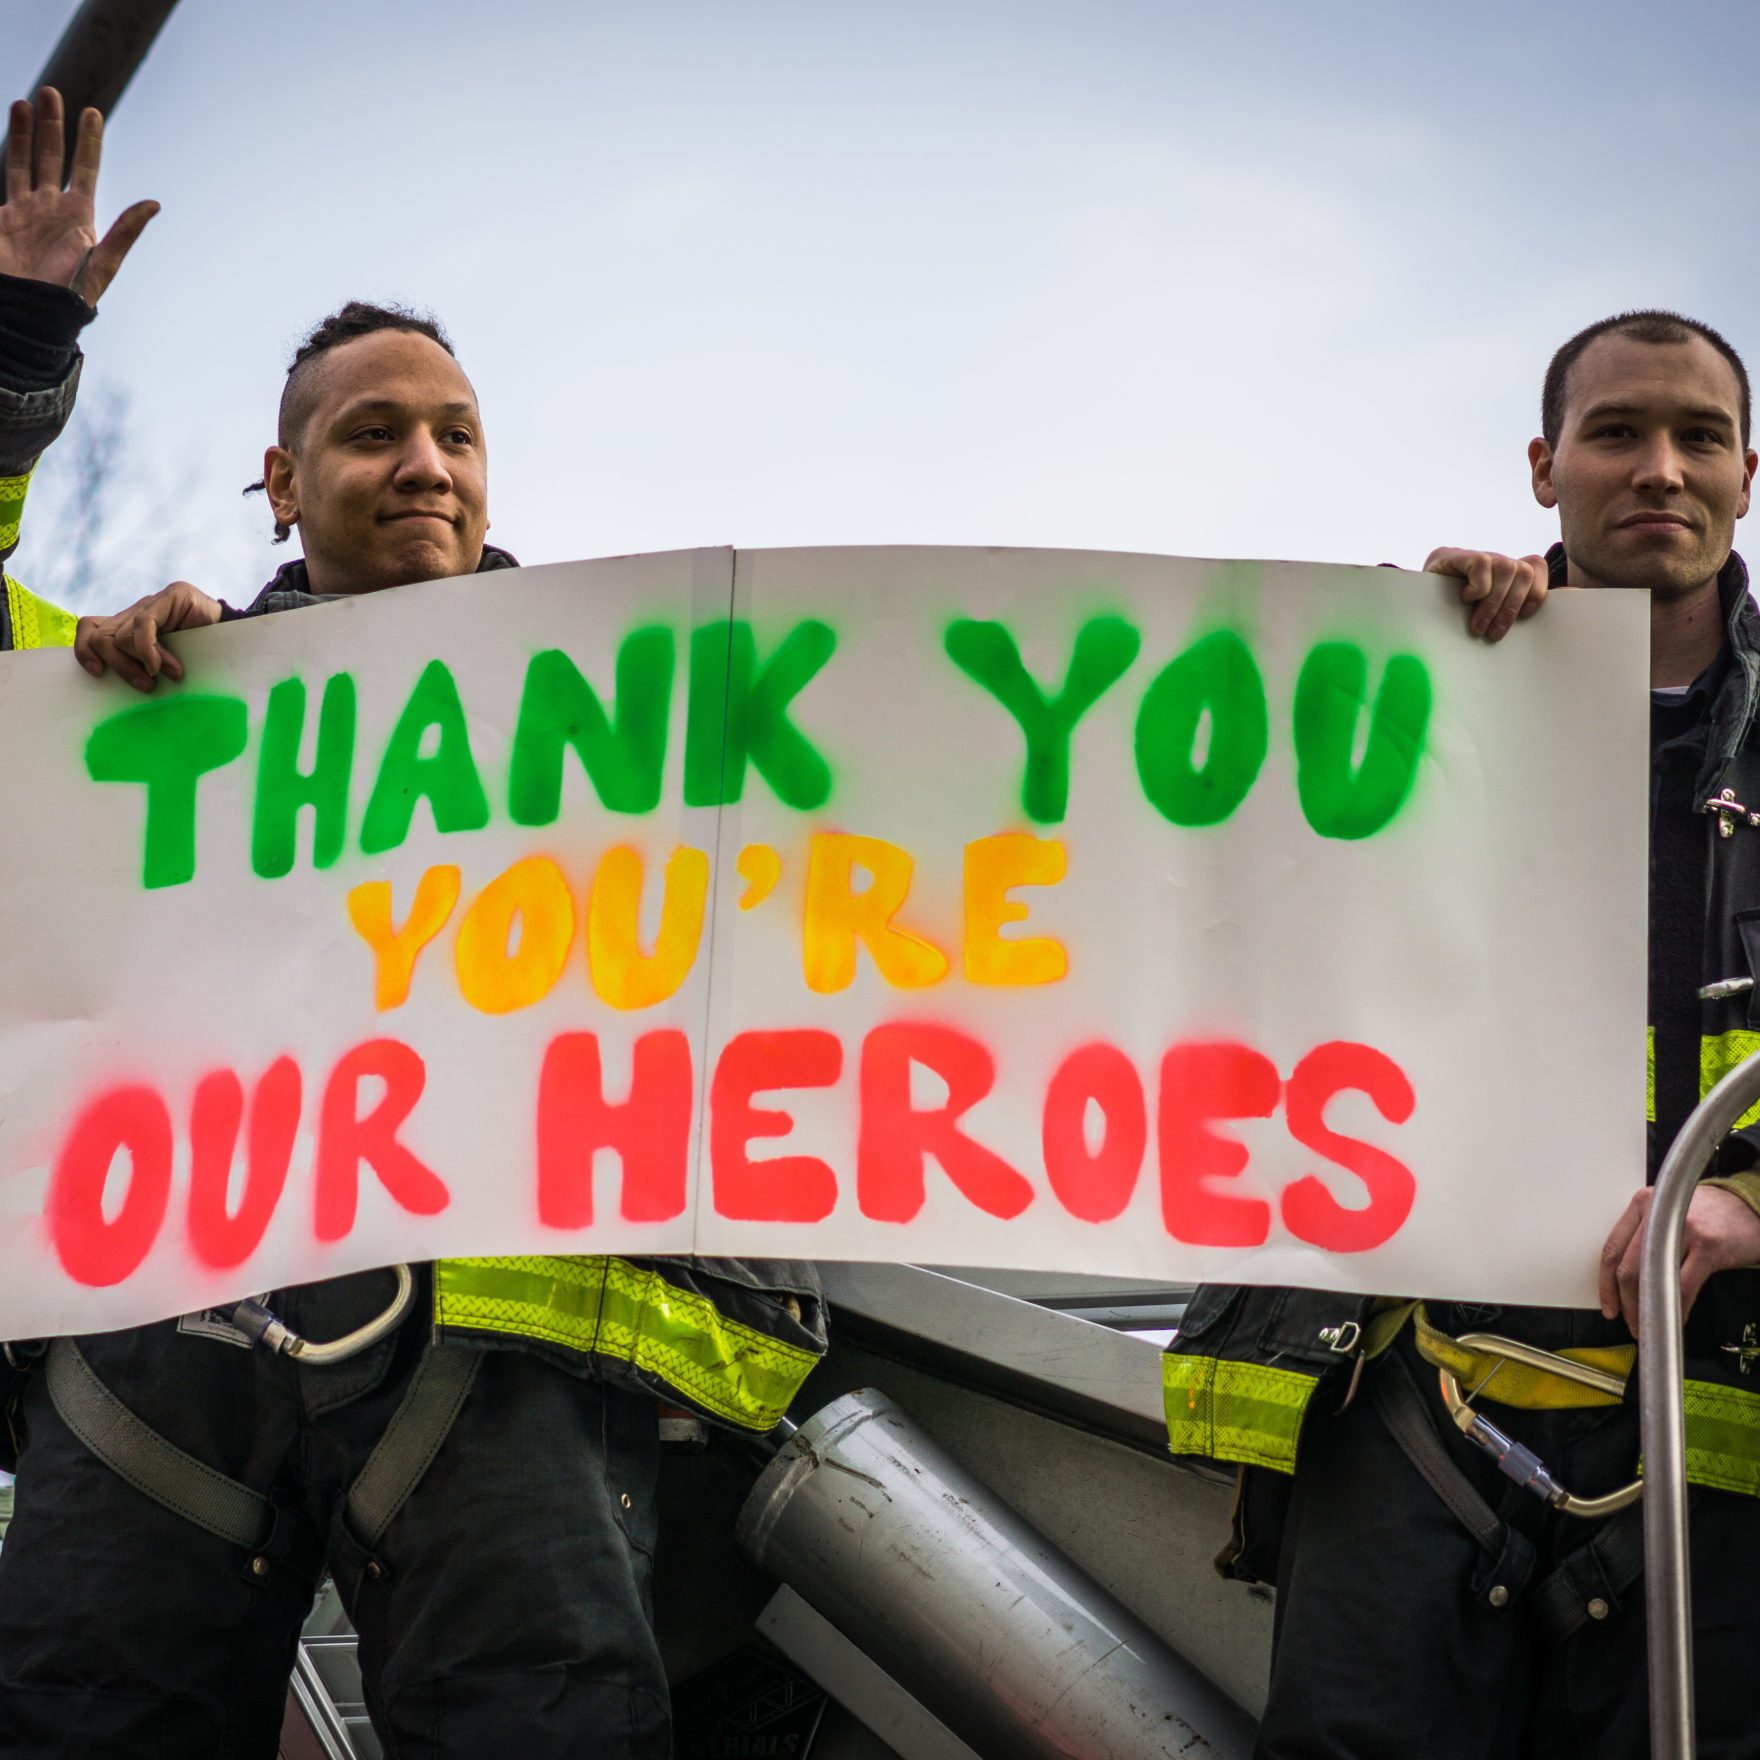 New York City firemen show their appreciation for healthcare